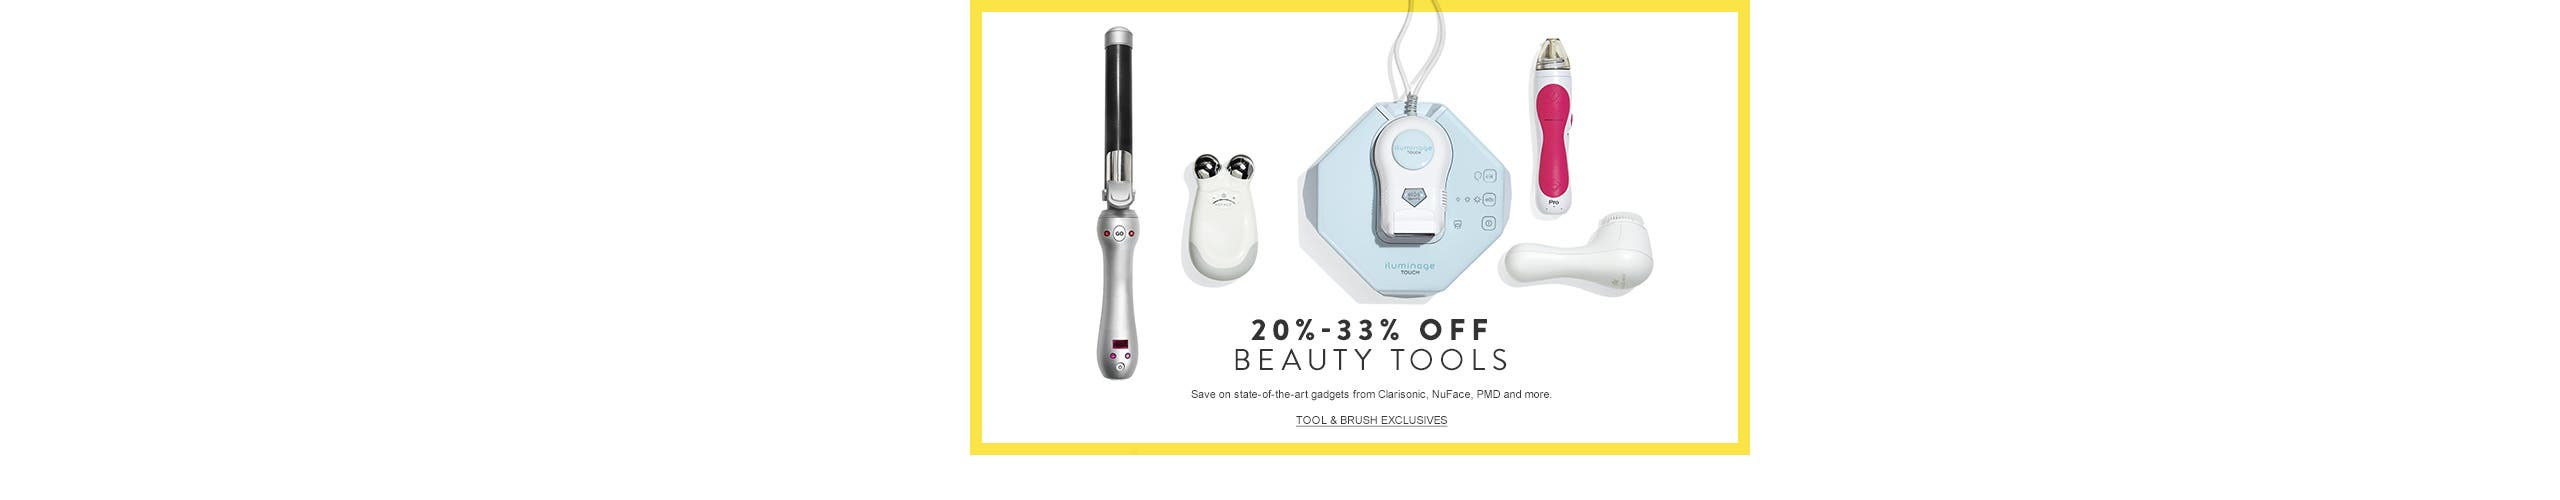 Anniversary Sale beauty exclusives: 20%-33% off beauty tools.